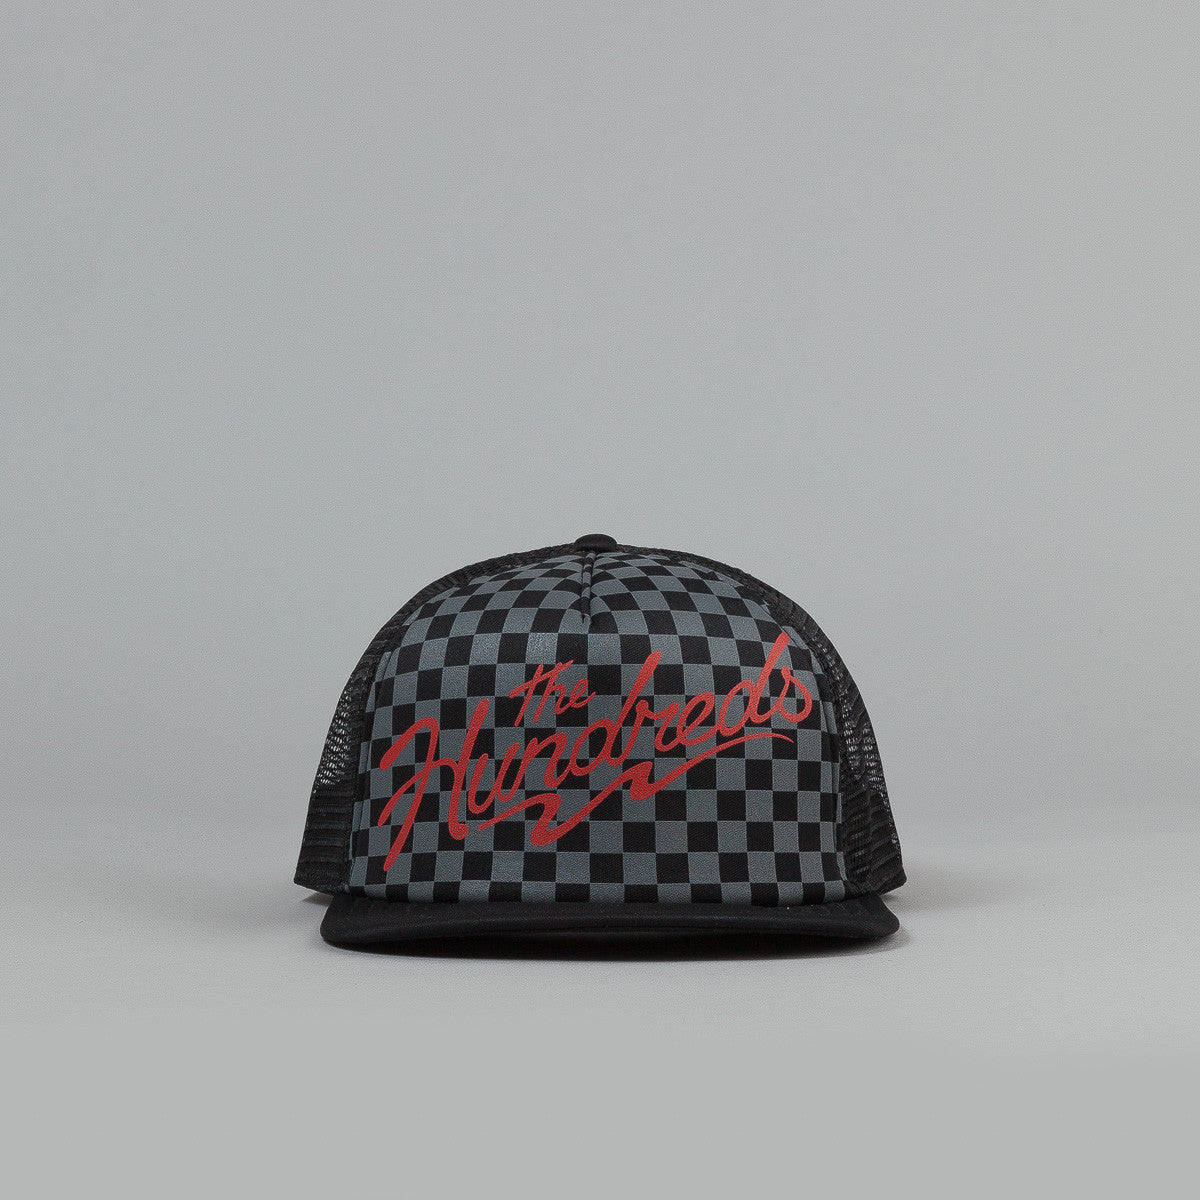 The Hundreds Crest Meshed Snapback Cap - Black